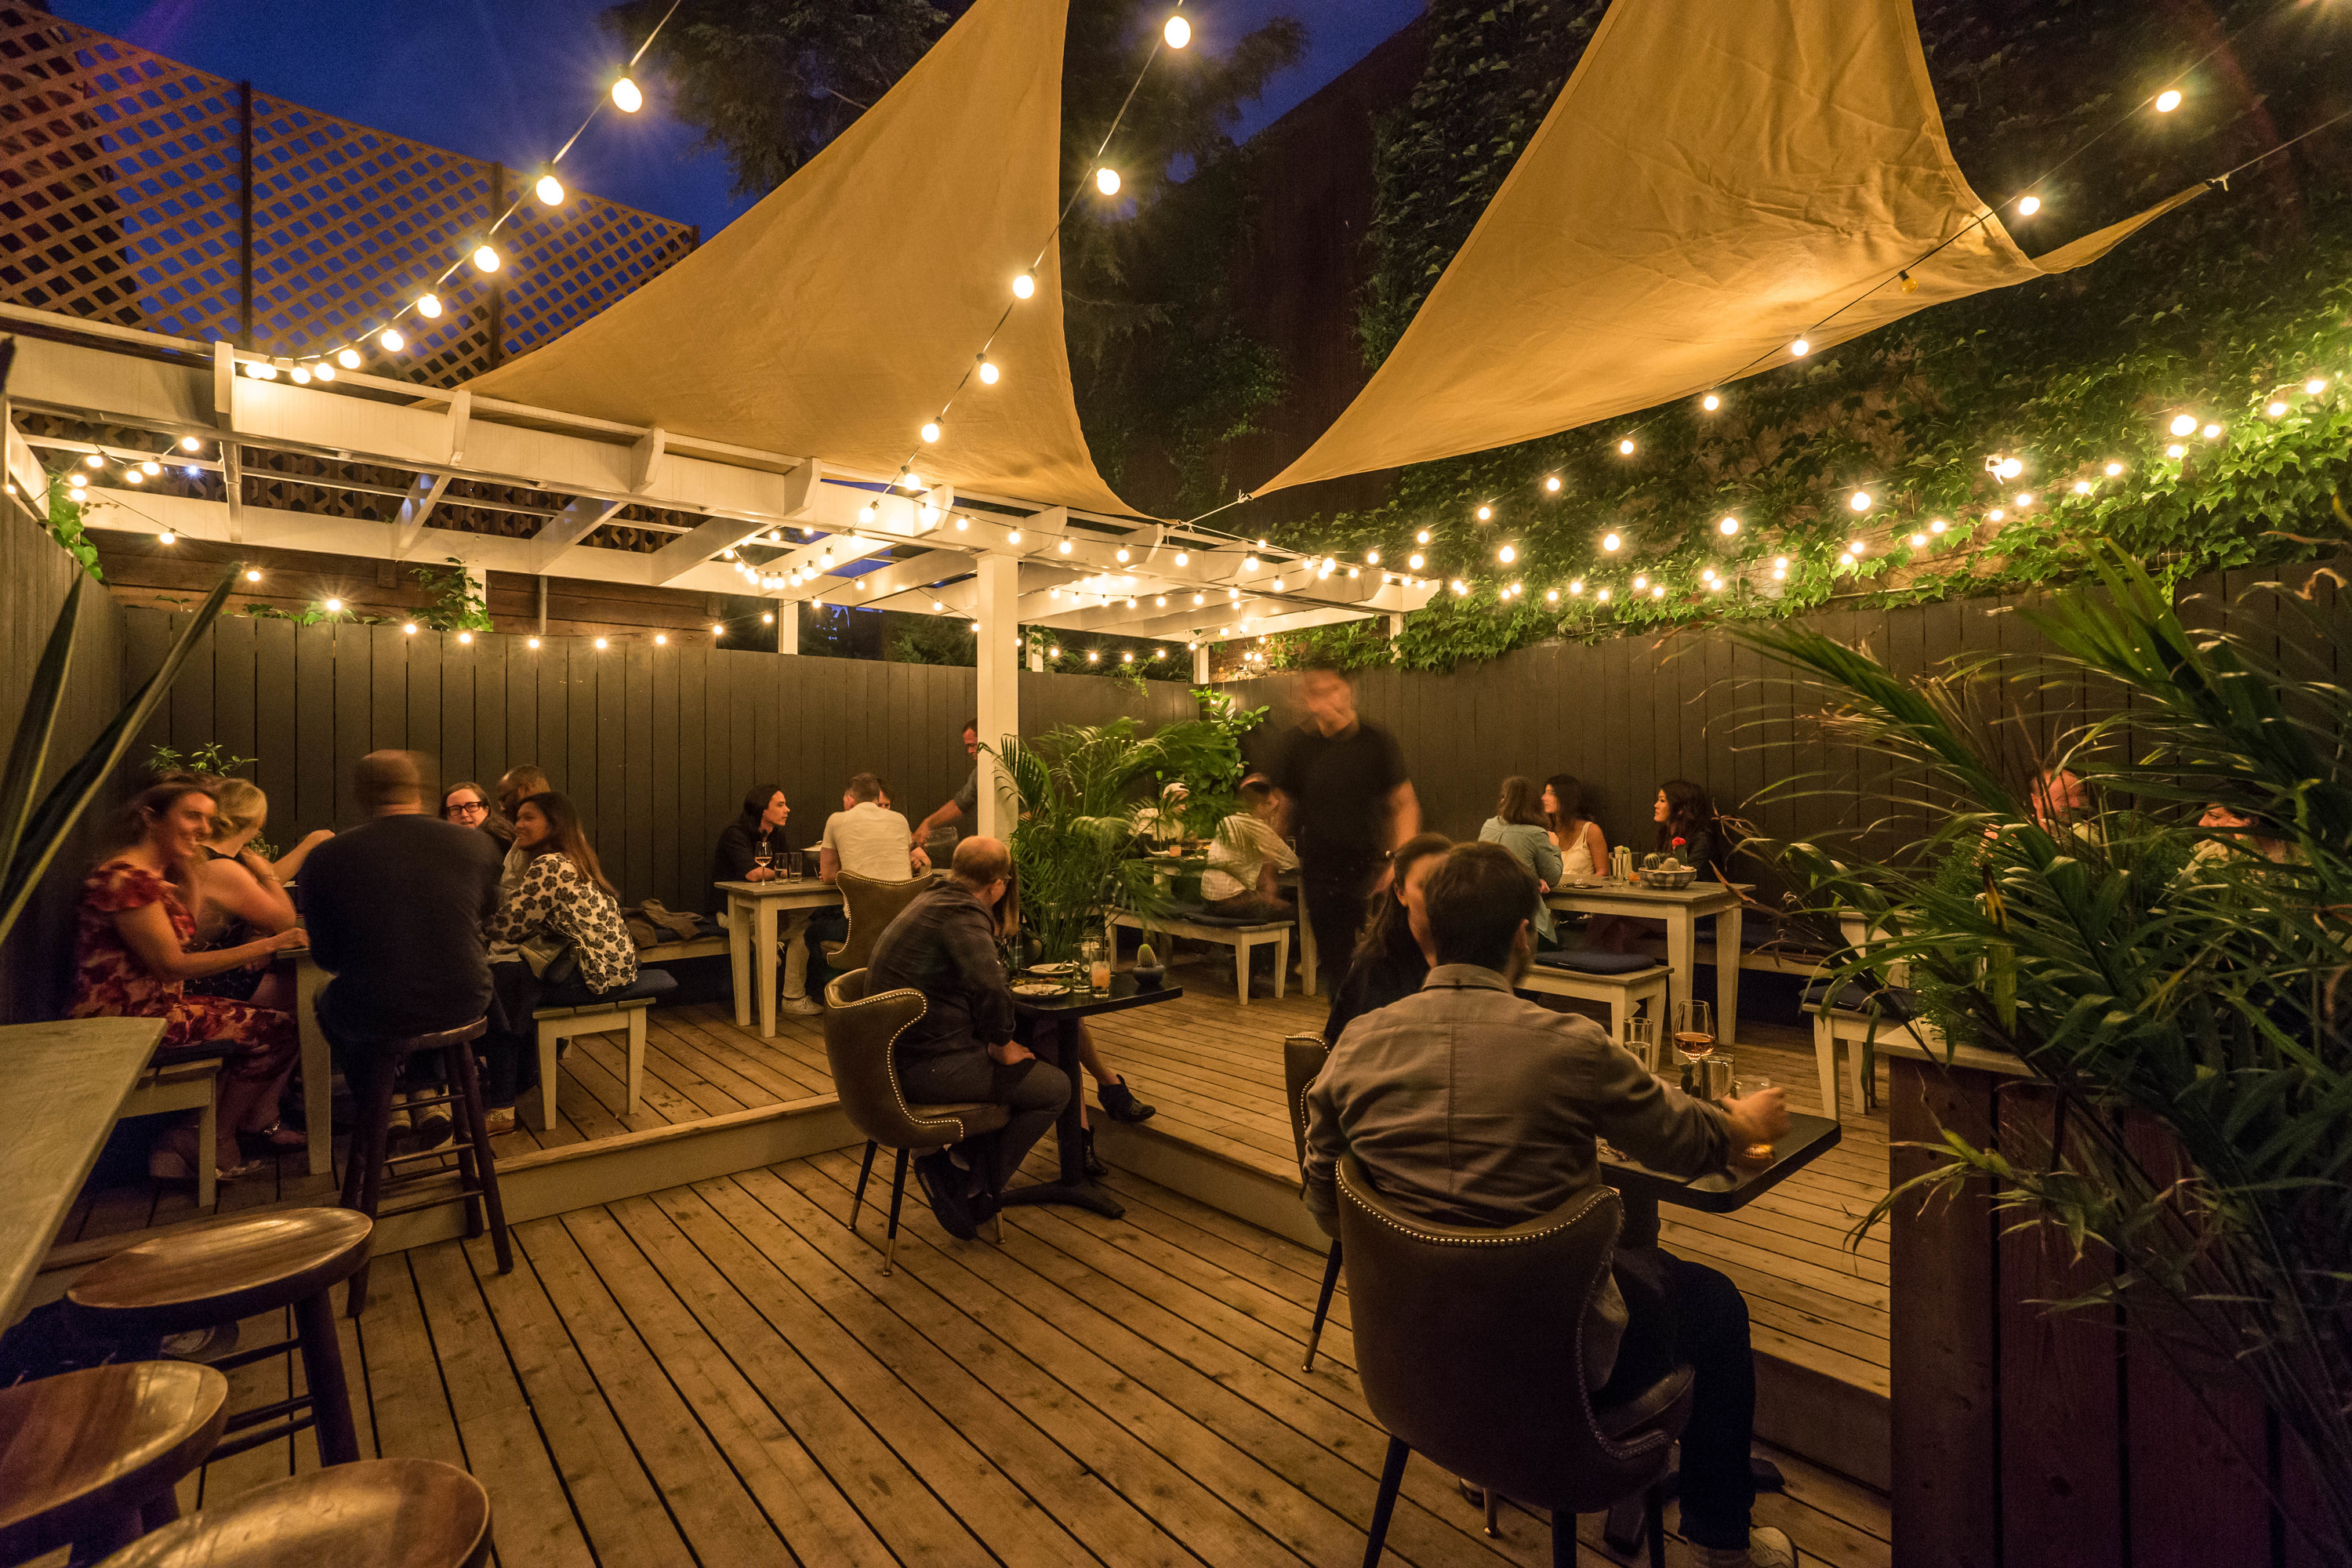 A winter holiday garden is coming to Midnights in Williamsburg